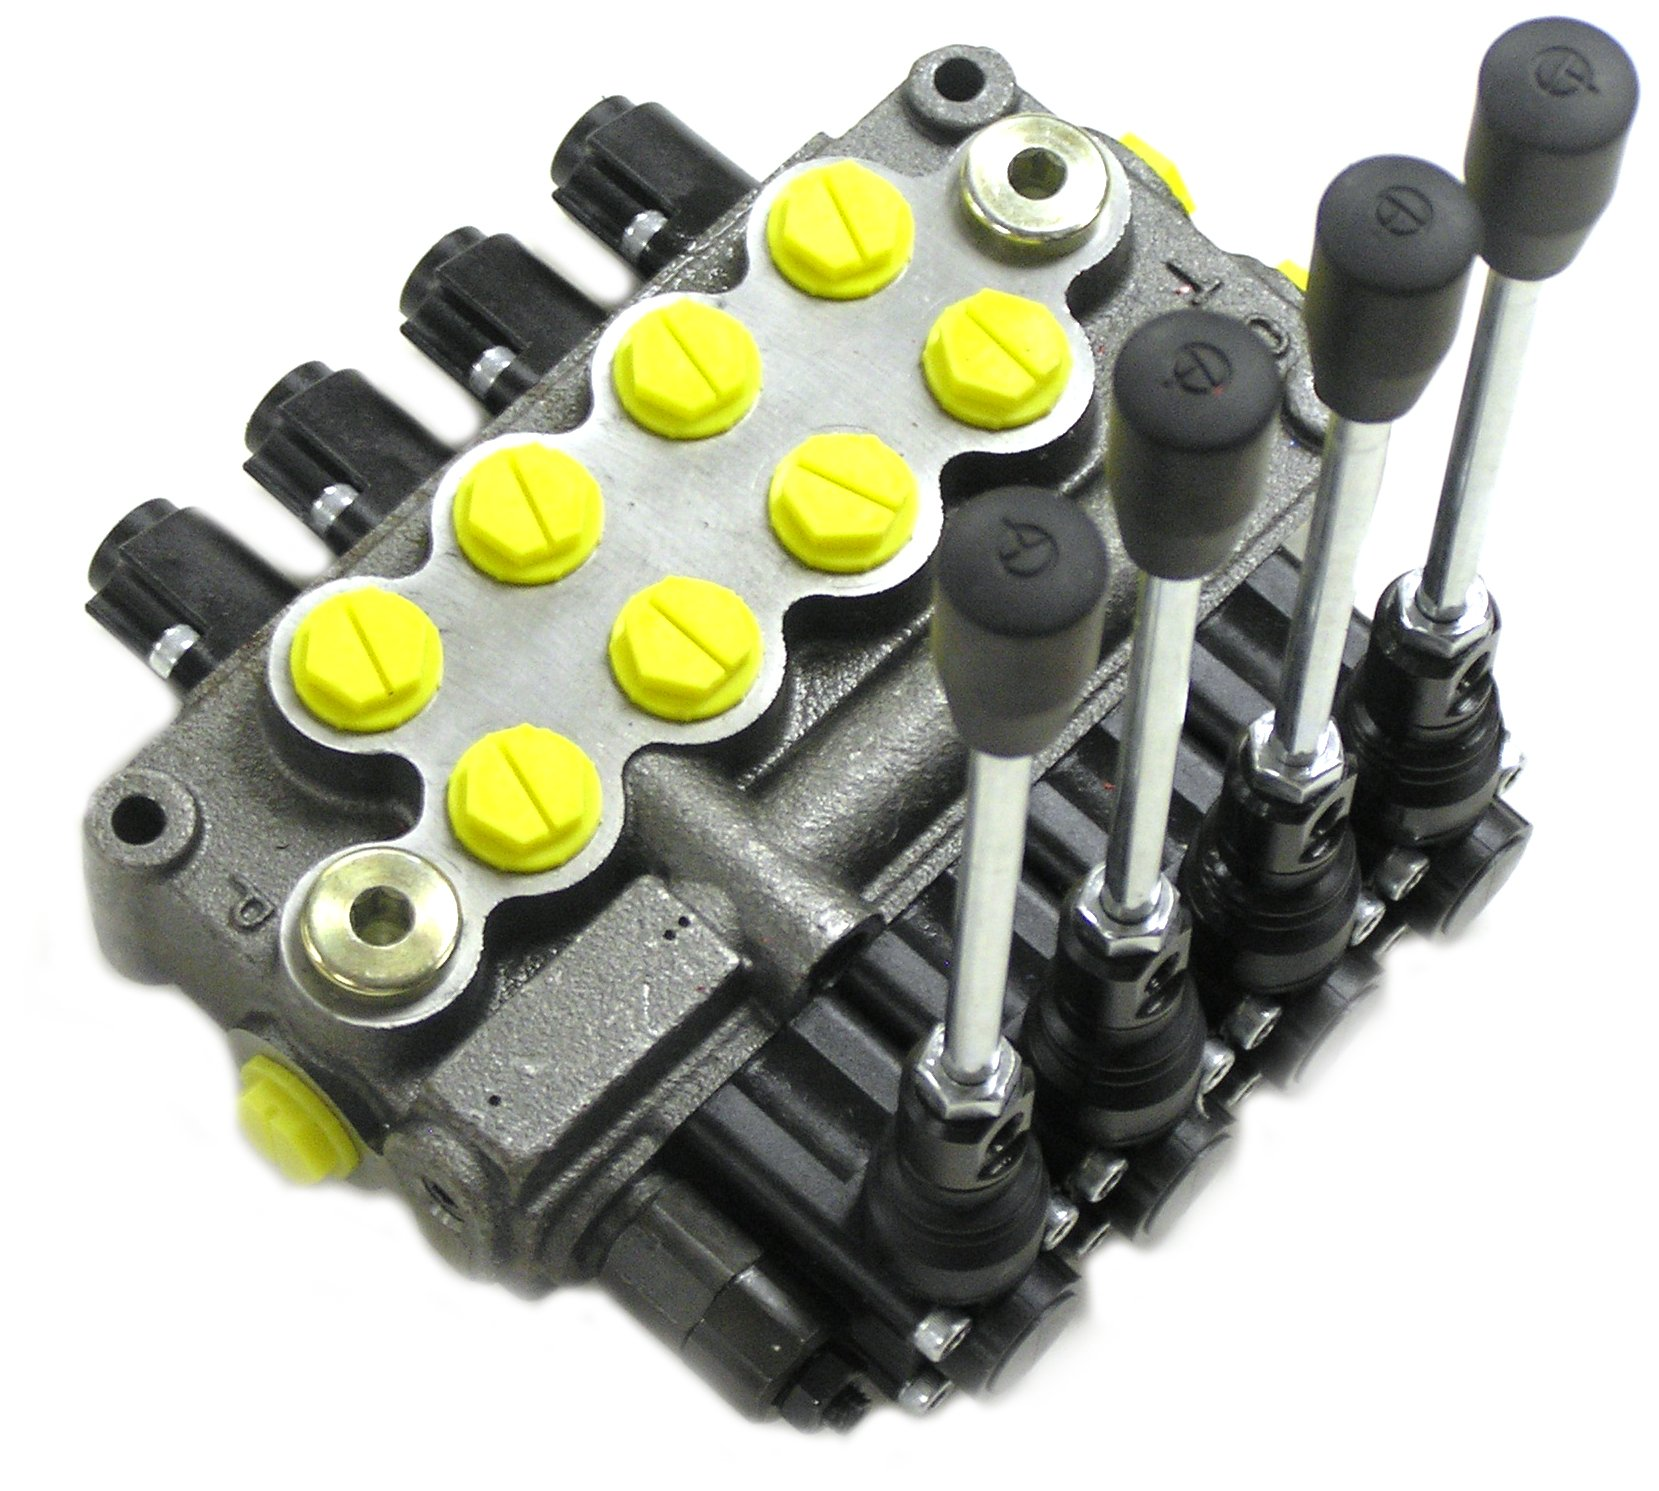 Prince MB41BBBB5C1 Directional Control Valve, Monoblock, Cast Iron, 4 Spool, 4 Ways, 3 Positions, Single Acting Cylinder Spool, Spring Center, Straight Handle, 3500 psi, 8 gpm, In/Out: #8 SAE, Work #8 SAE